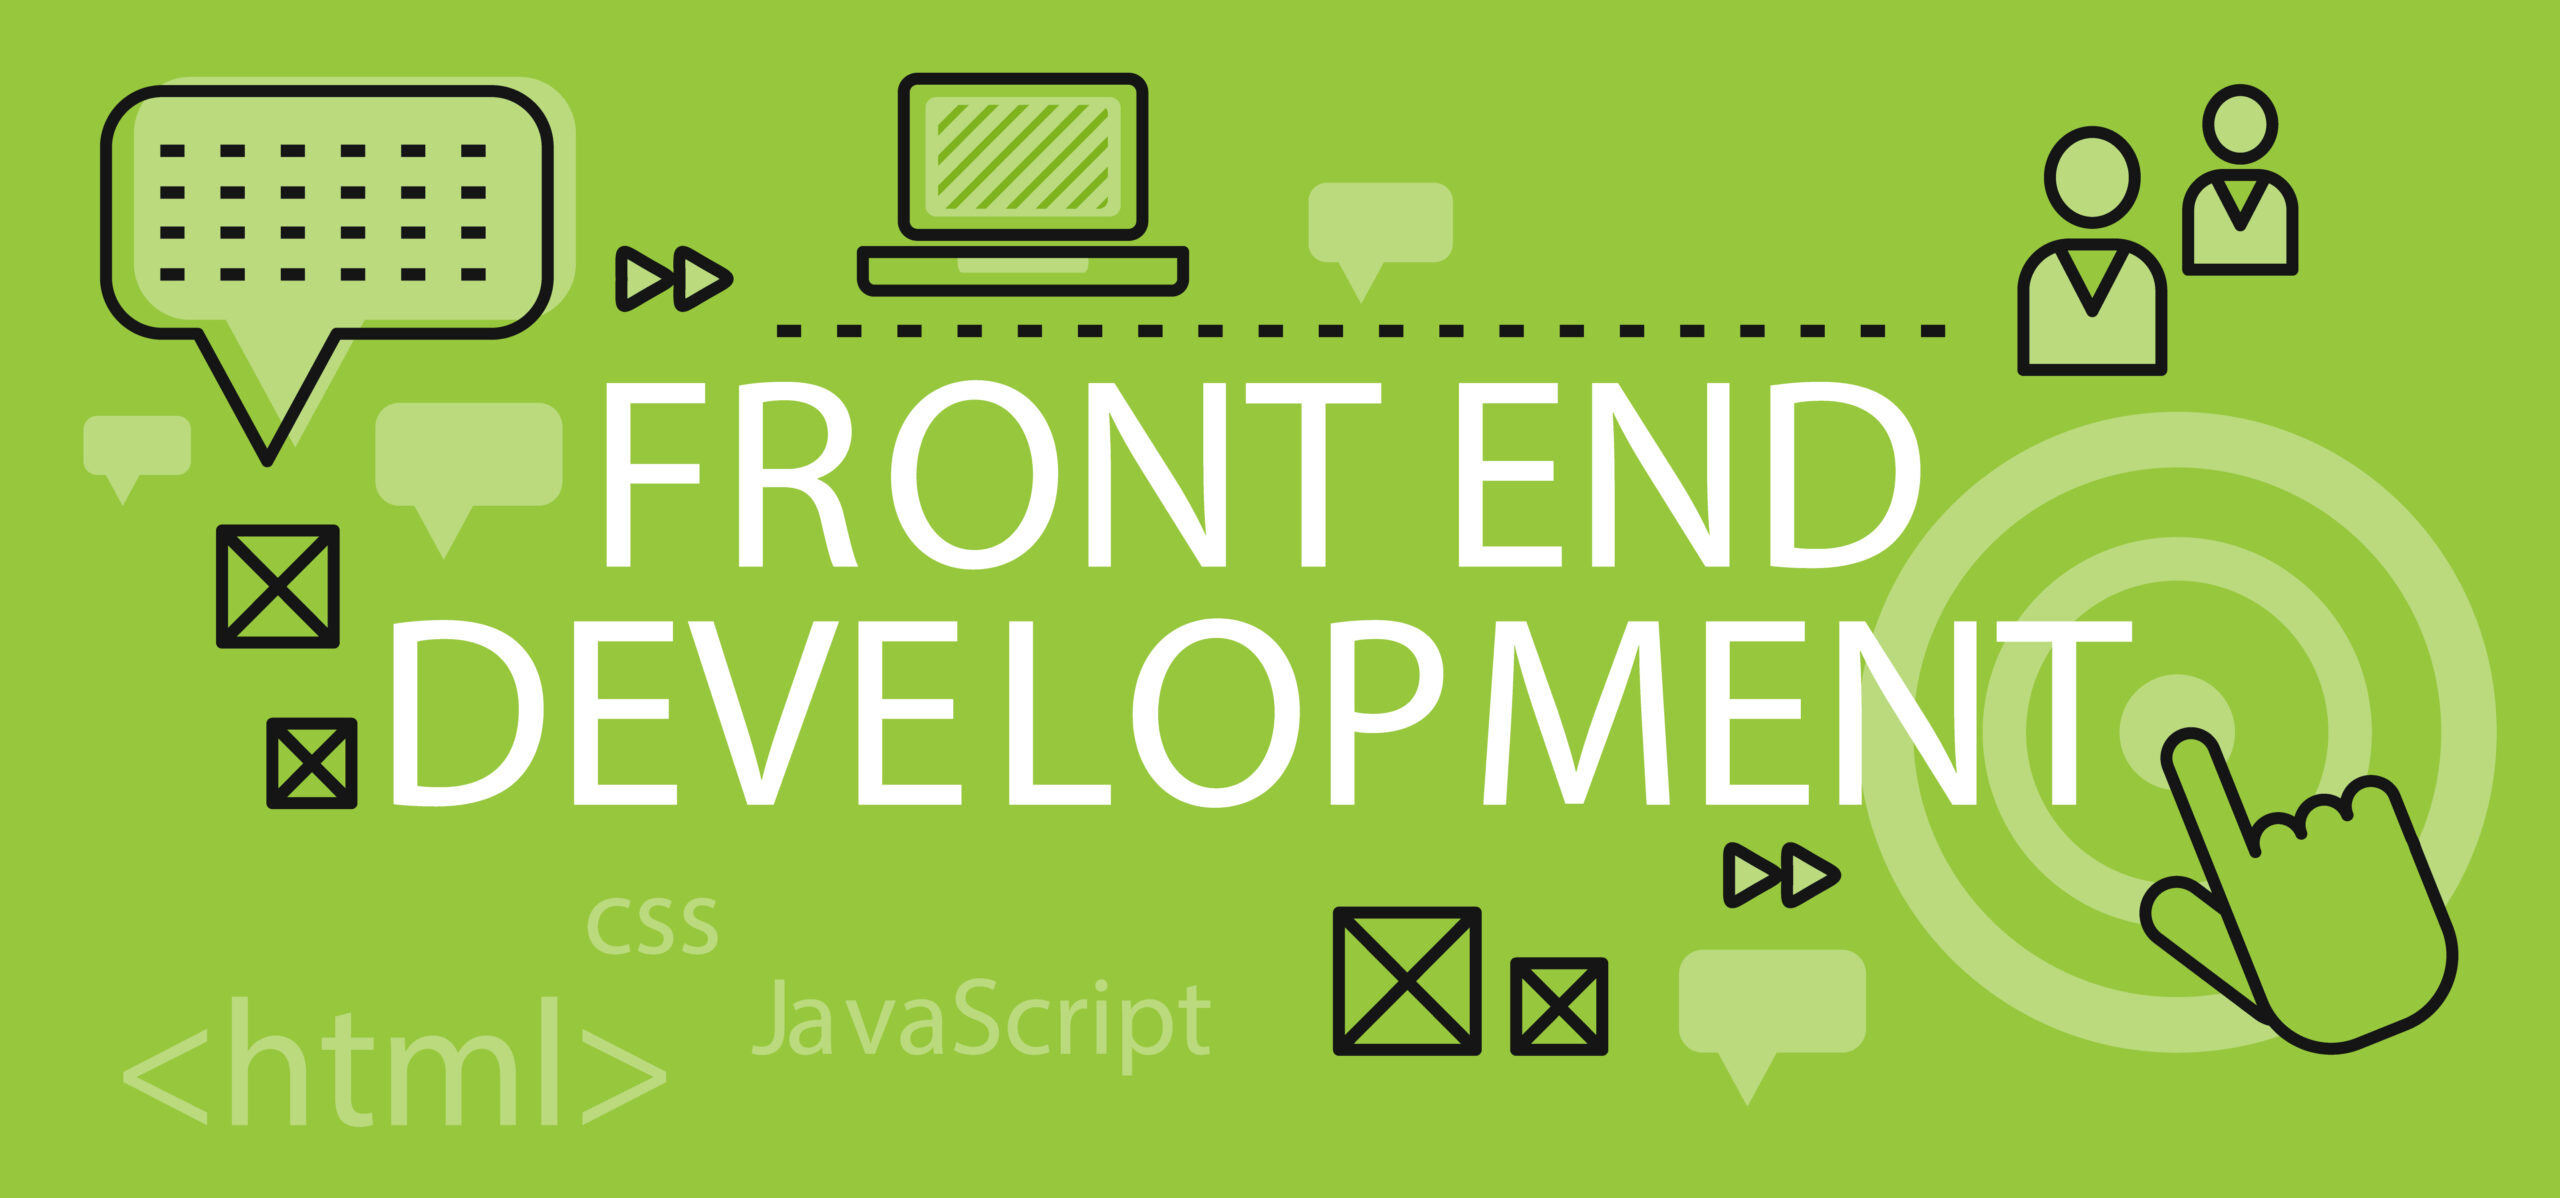 What Is Front End Optimization?